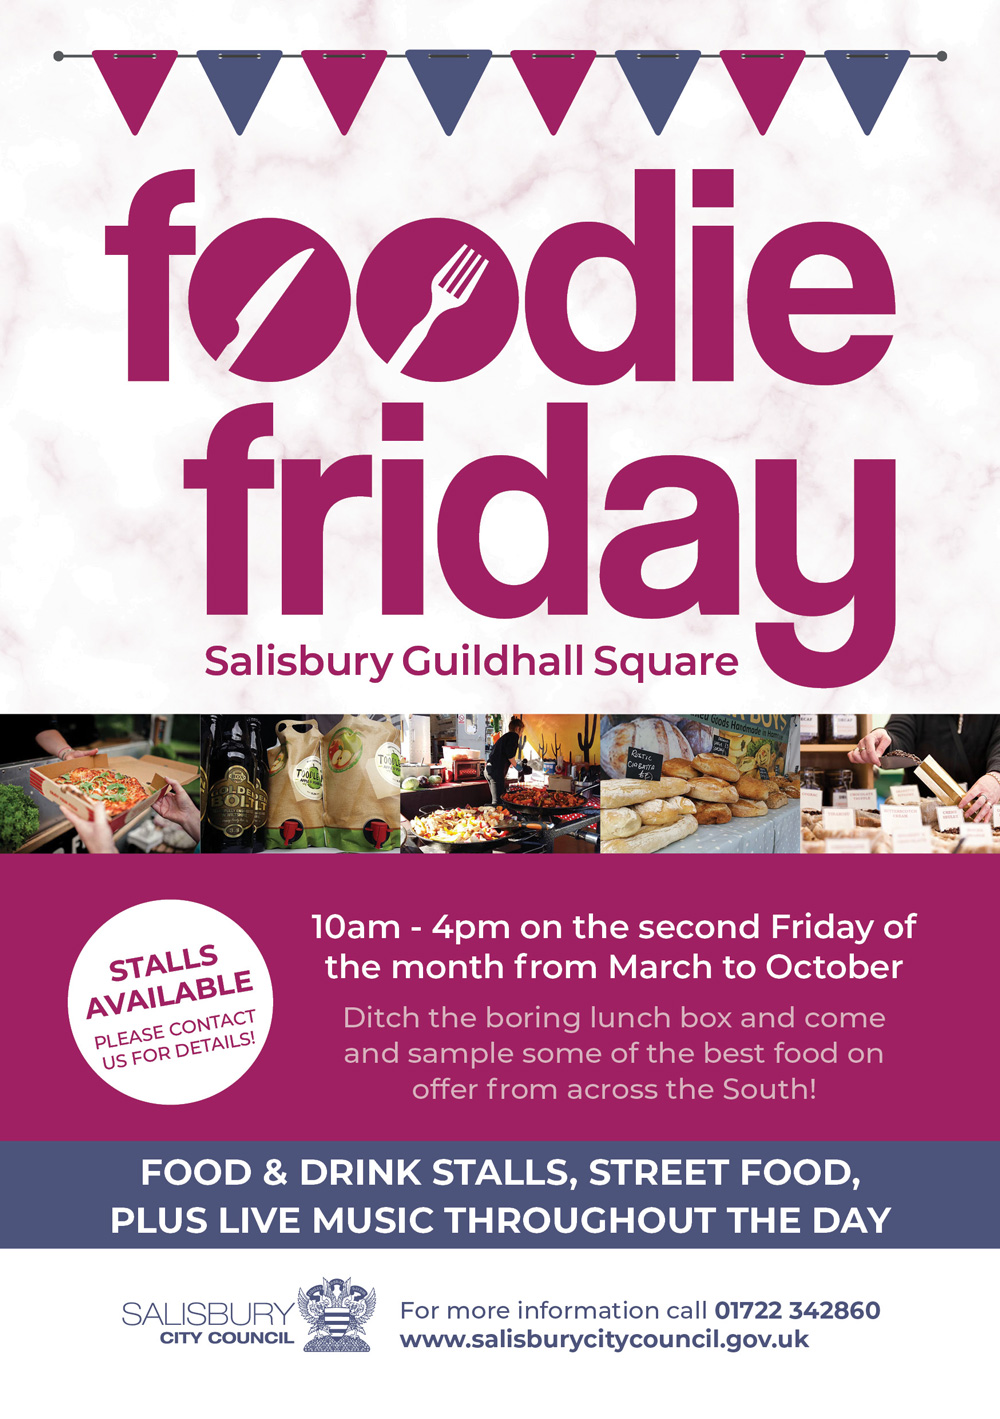 Salisbury Foodie Friday